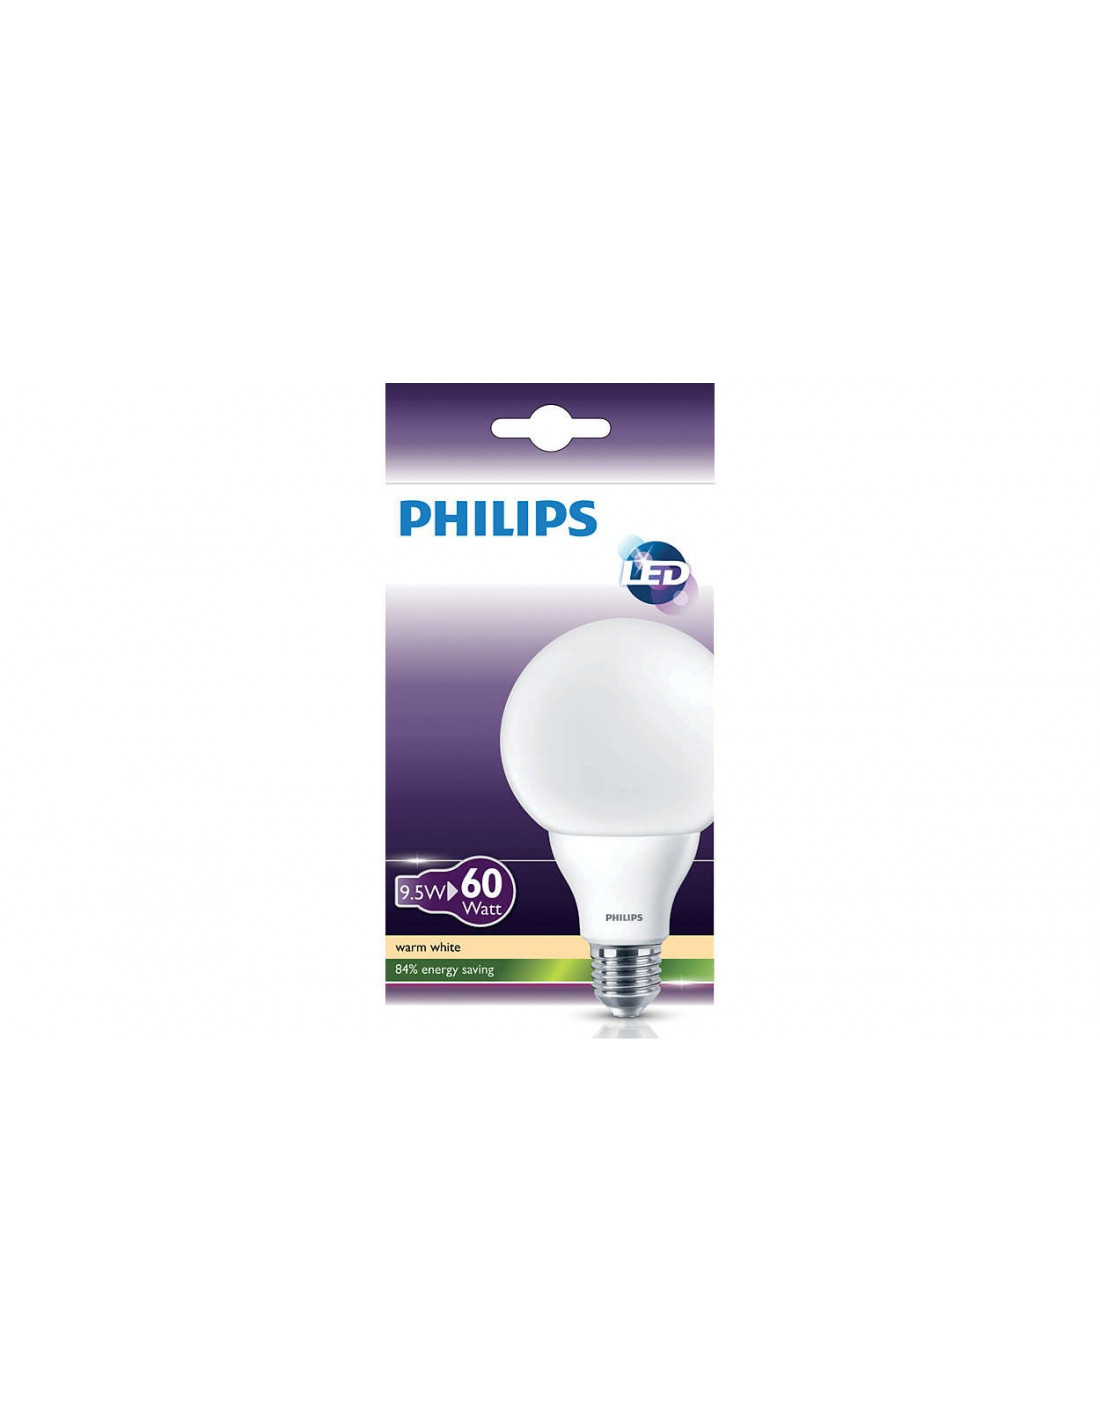 philips ampoule led globe blanc chaud 9 5w 60w culot e27. Black Bedroom Furniture Sets. Home Design Ideas